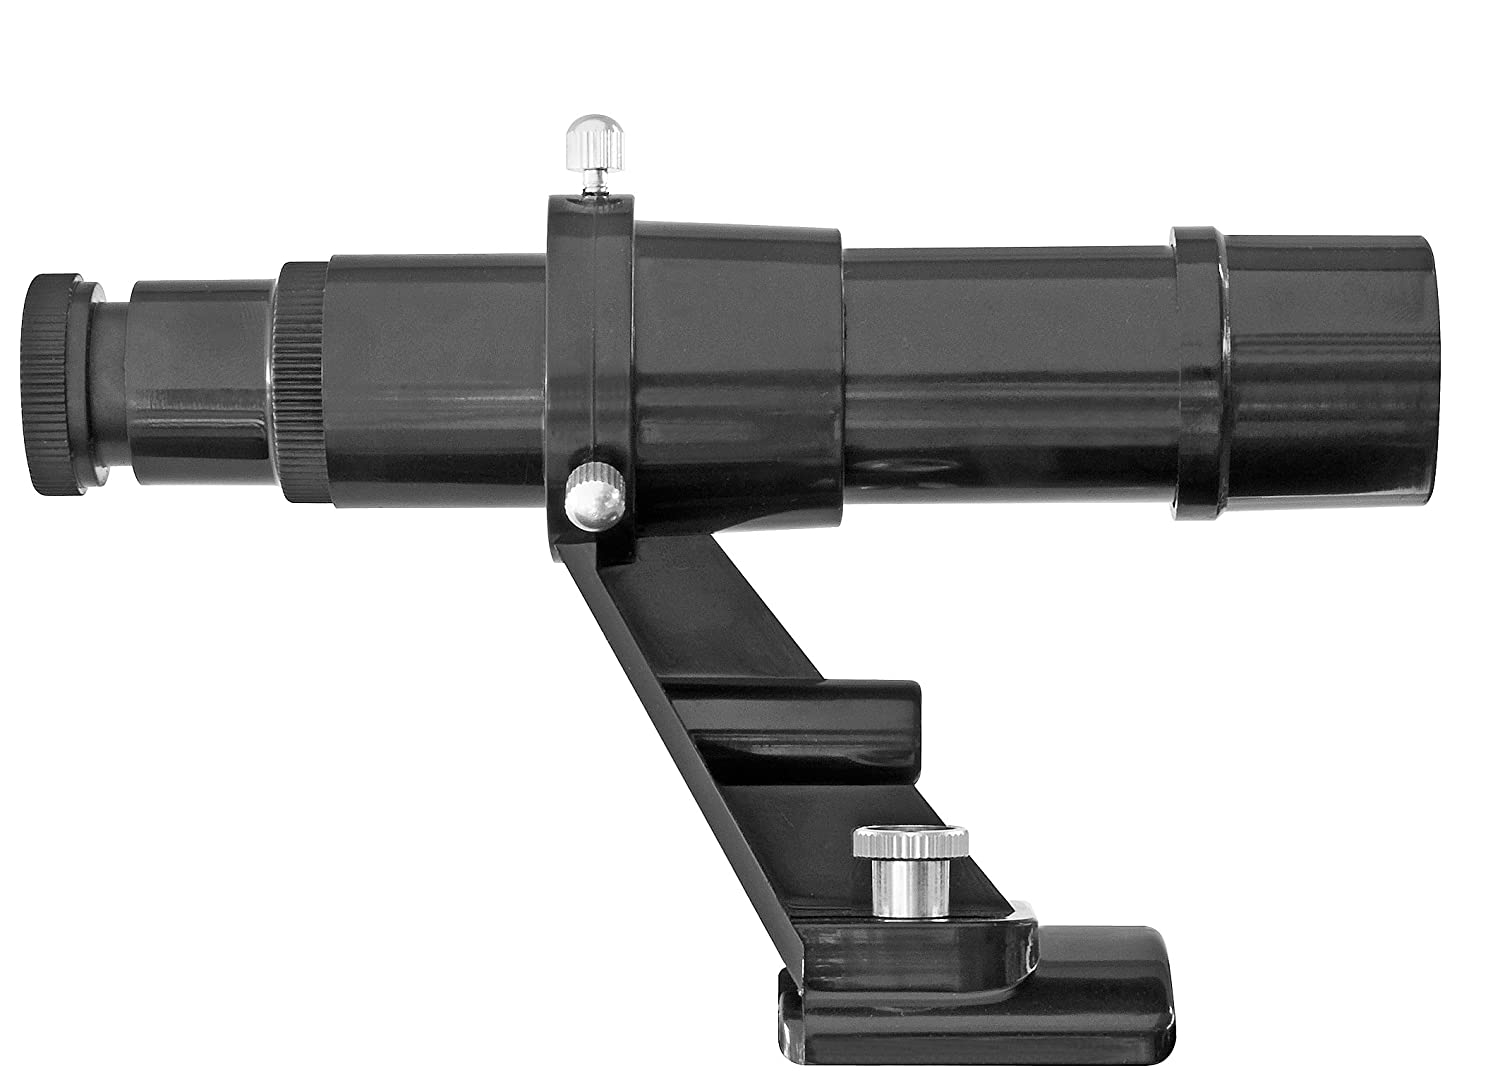 National Geographic Refractor Telescope 60//700 AZ with tripod